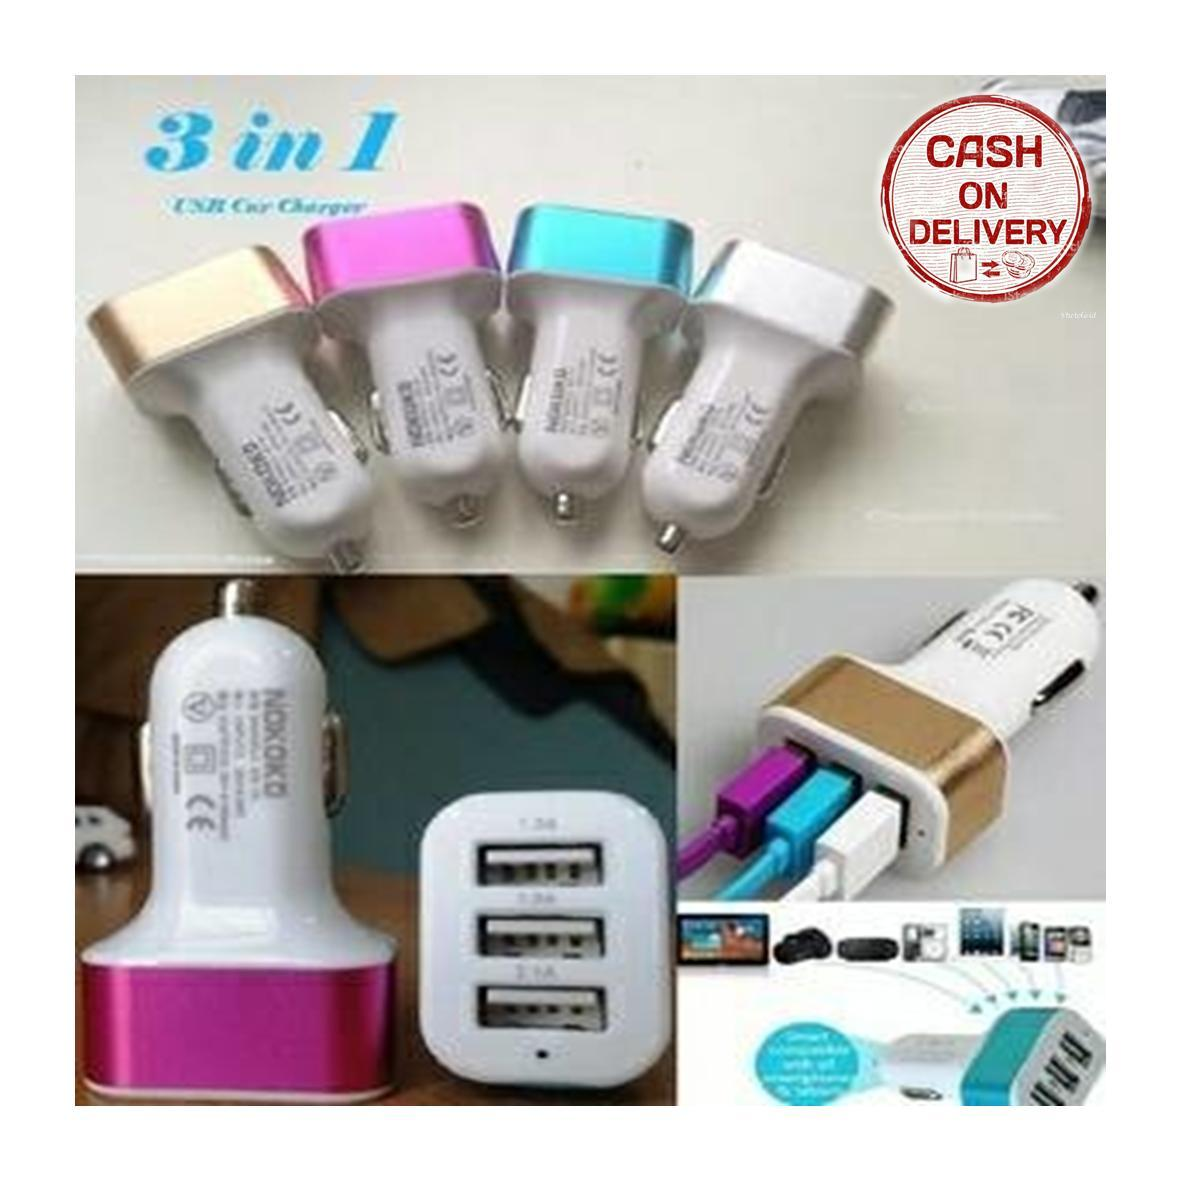 Kado Unik-- Car Charger 3 in 1 Port Usb Colokan Lighter Samsung Android Apple Mobil / Charger Mobil Multifungsi / Colokan Lighter / Charger Hp Di Mobil 3 Port / Fast Charger / Charger Mobil Serbaguna / Charger Mobil Portabel / Charger Mobil Murah